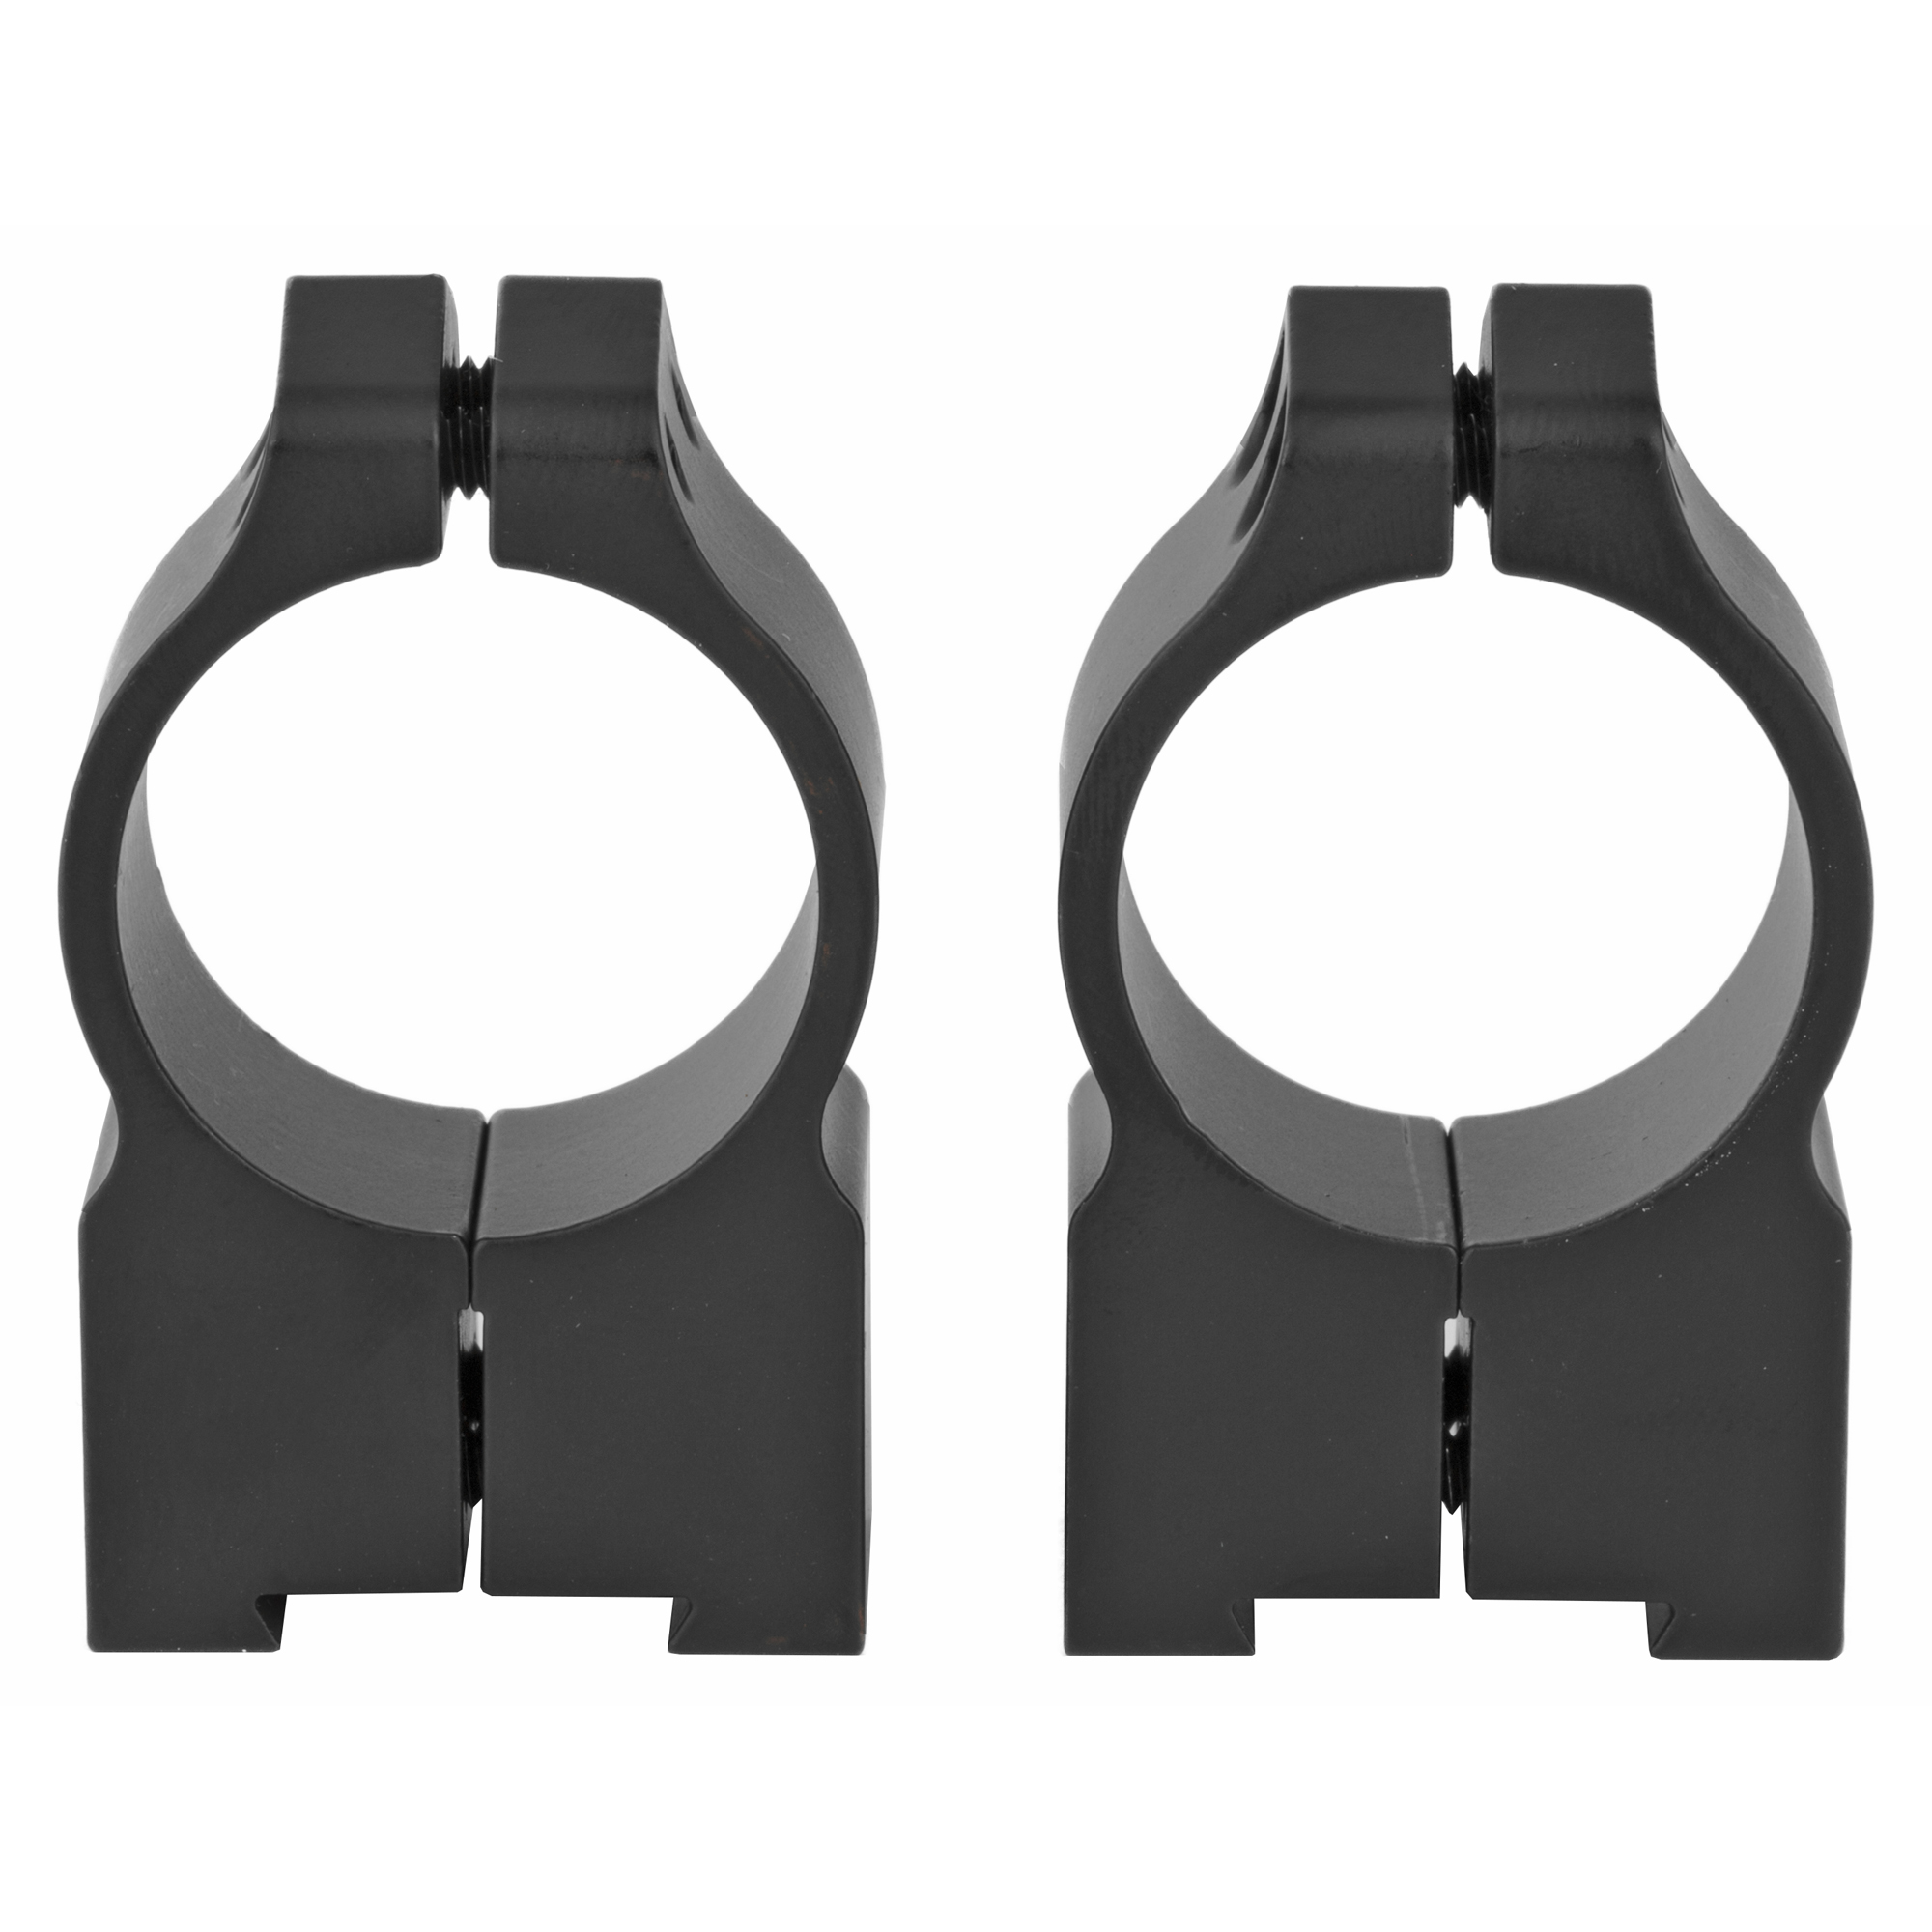 "Warne Cz 527 1"" High Matte Rings"